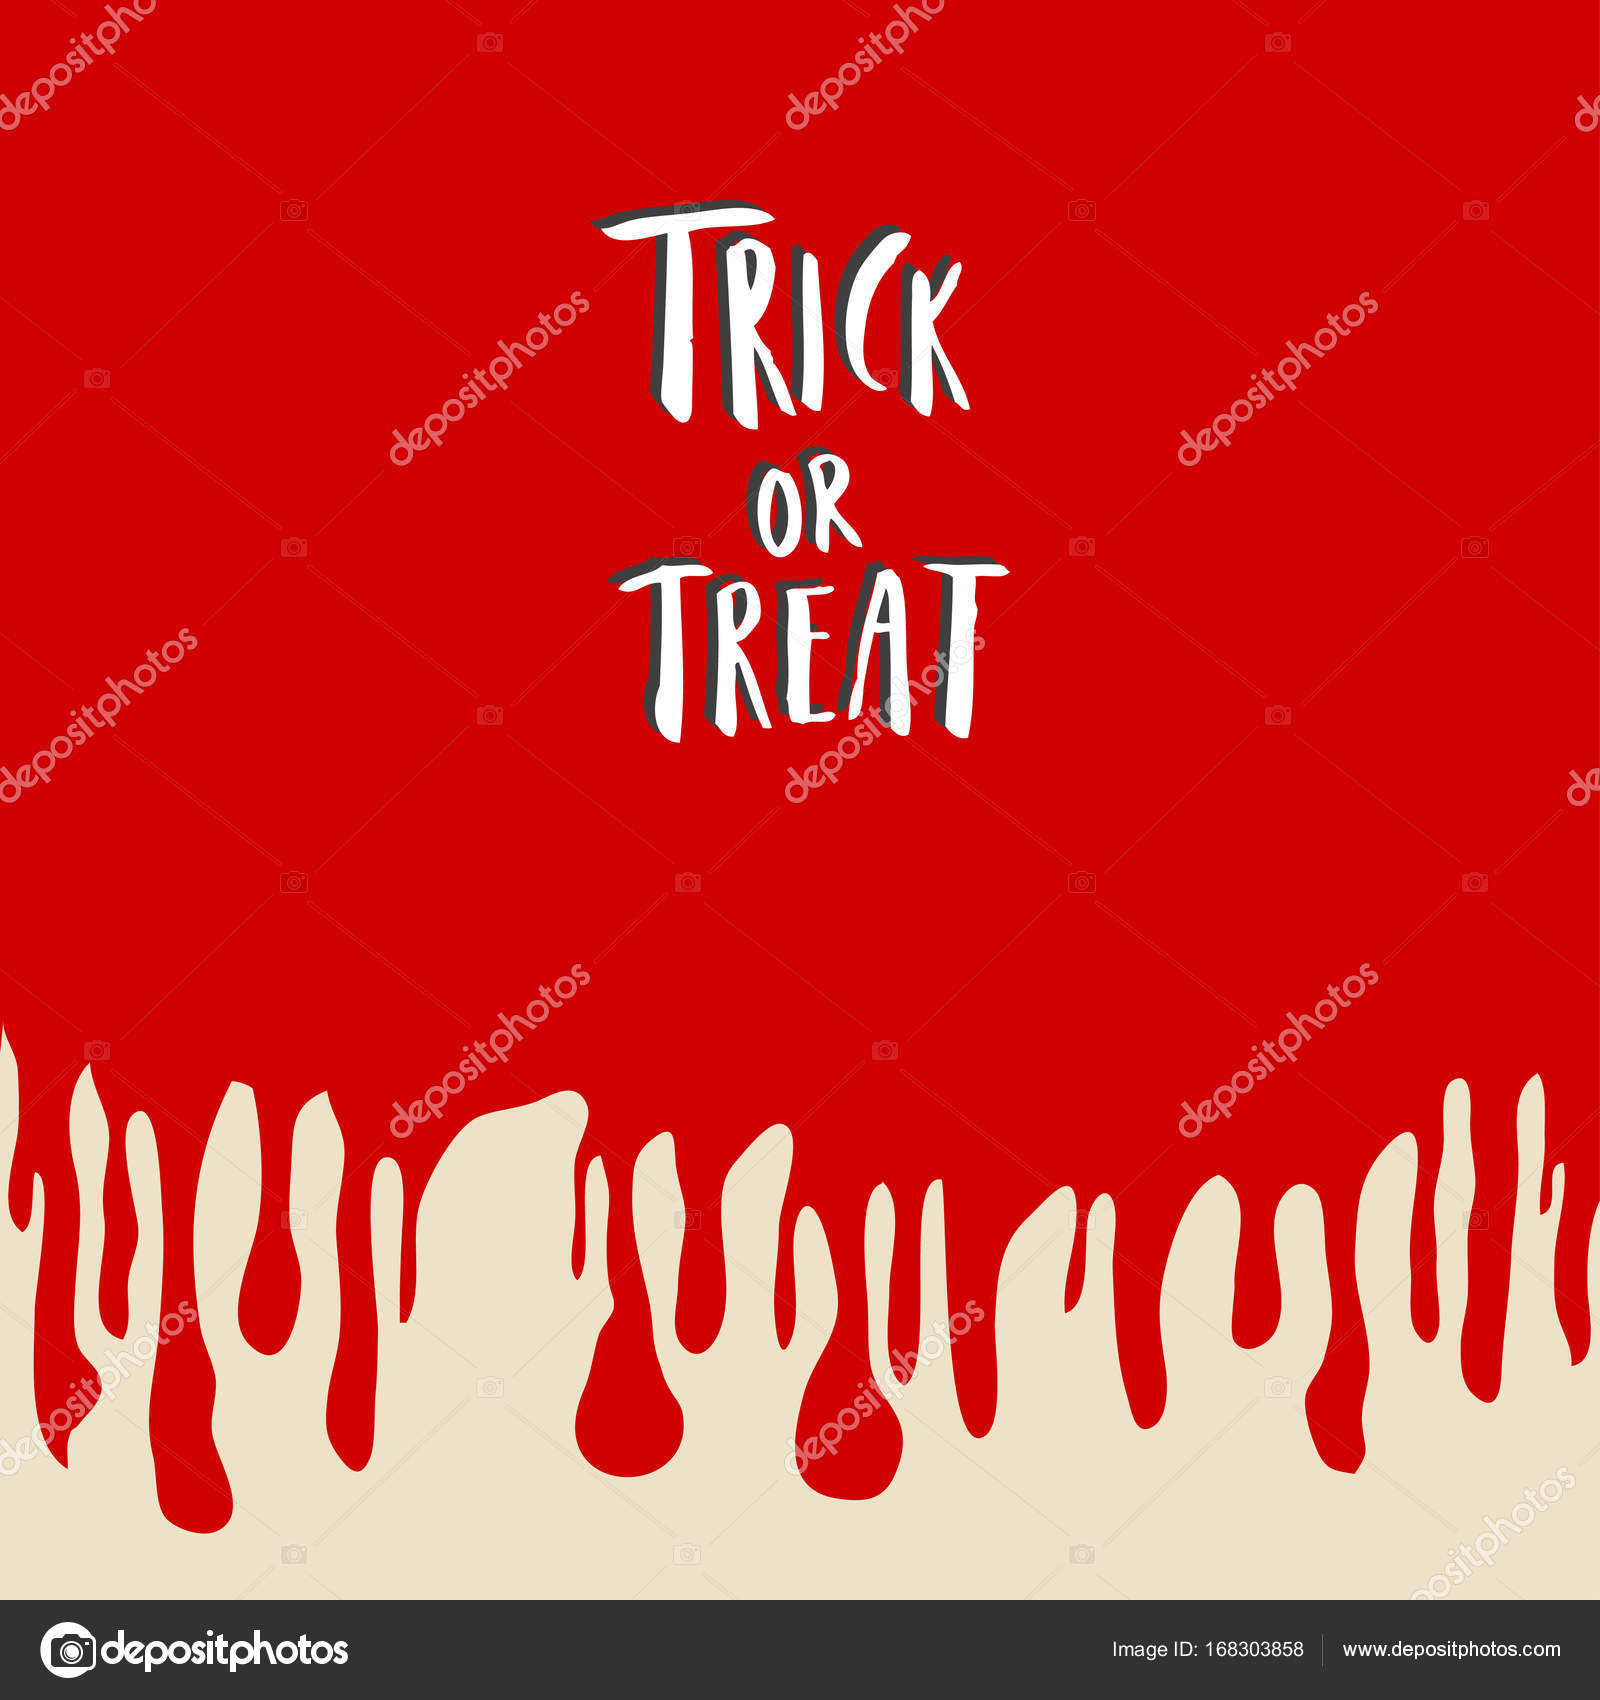 Trick or treat hand lettering halloween holiday inscription isolated trick or treat hand lettering halloween holiday inscription isolated on blood back to greeting cards m4hsunfo